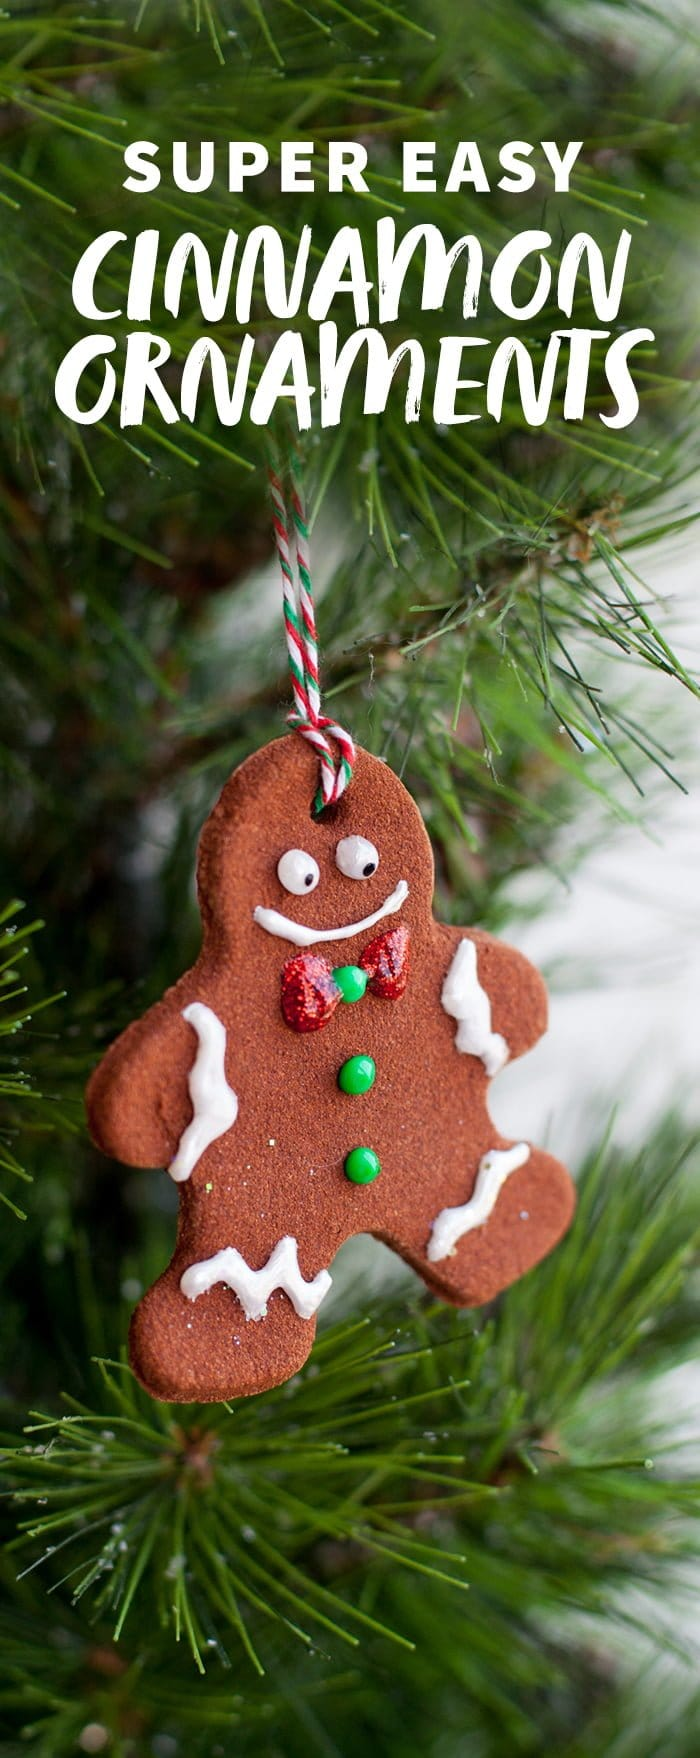 ornaments homemade cinnamon ornaments - Gingerbread Christmas Decorations Beautiful To Look